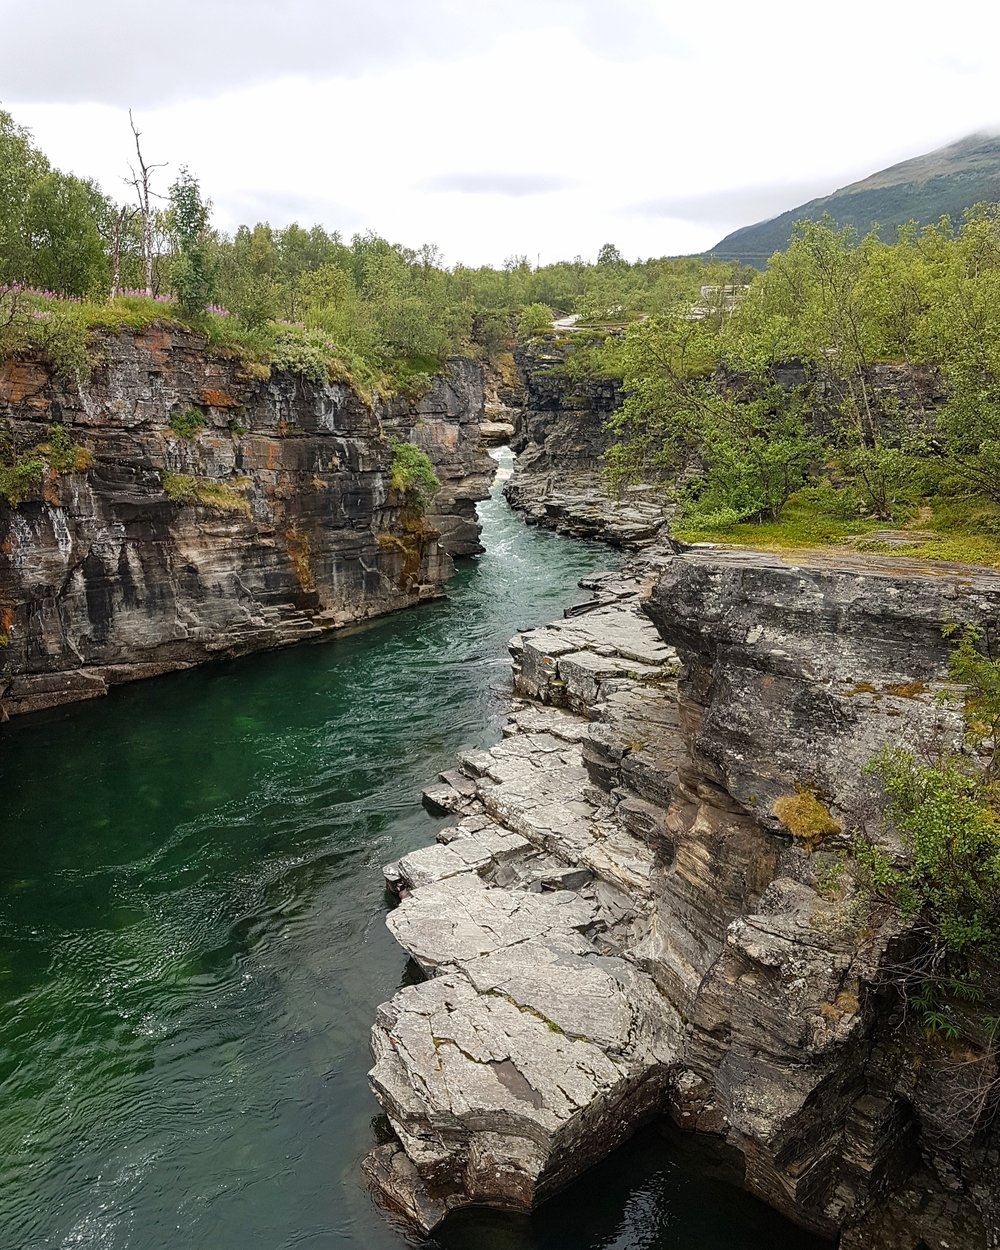 Rugged rocks and the lower valley in the Abisko National Park. You can hike all around and across the river, in some of the finest scenery you will find in Northern Lapland.  It was hard to capture and describe the real beauty of this place.